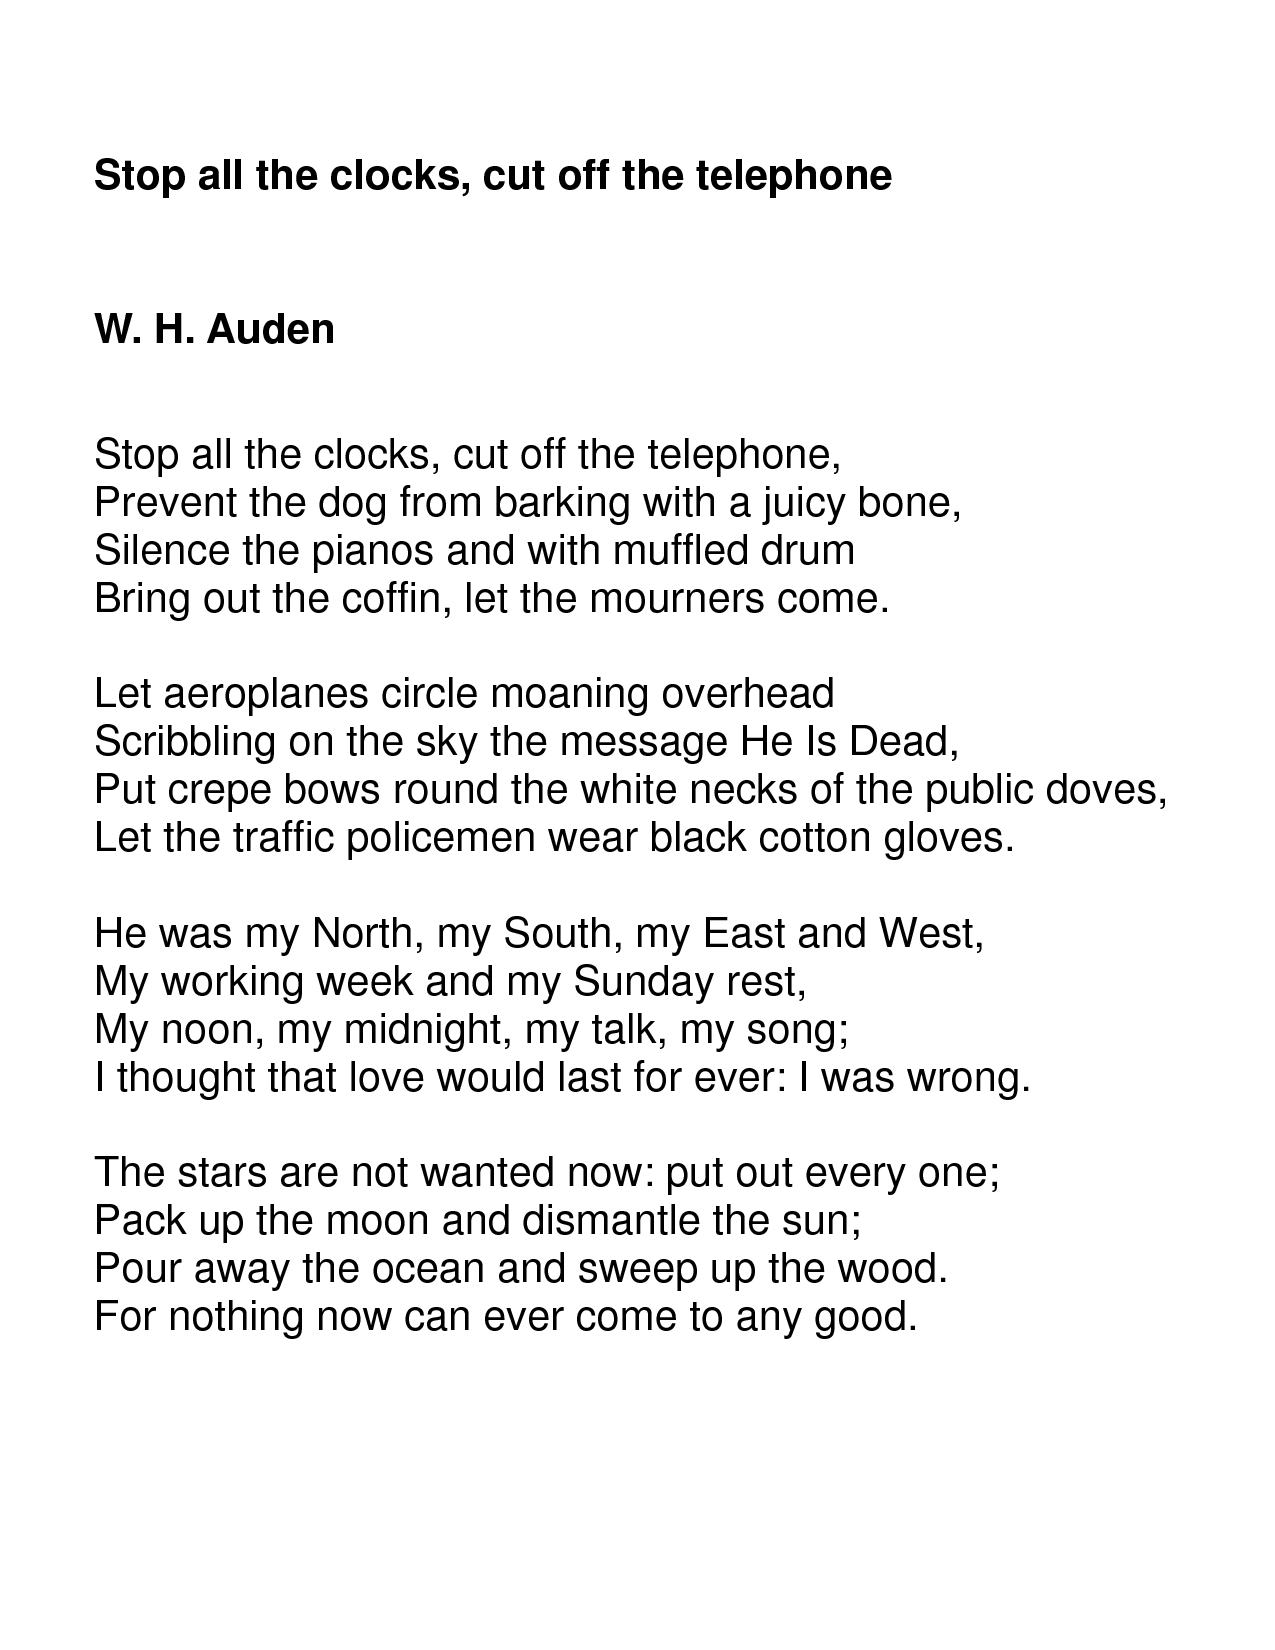 an analysis of the poem as i walked out one evening by wh auden Brief summary of the poem as i walked out one evening  one evening by  wh auden  ol' wh makes it pretty clear what's going on in this one the title.